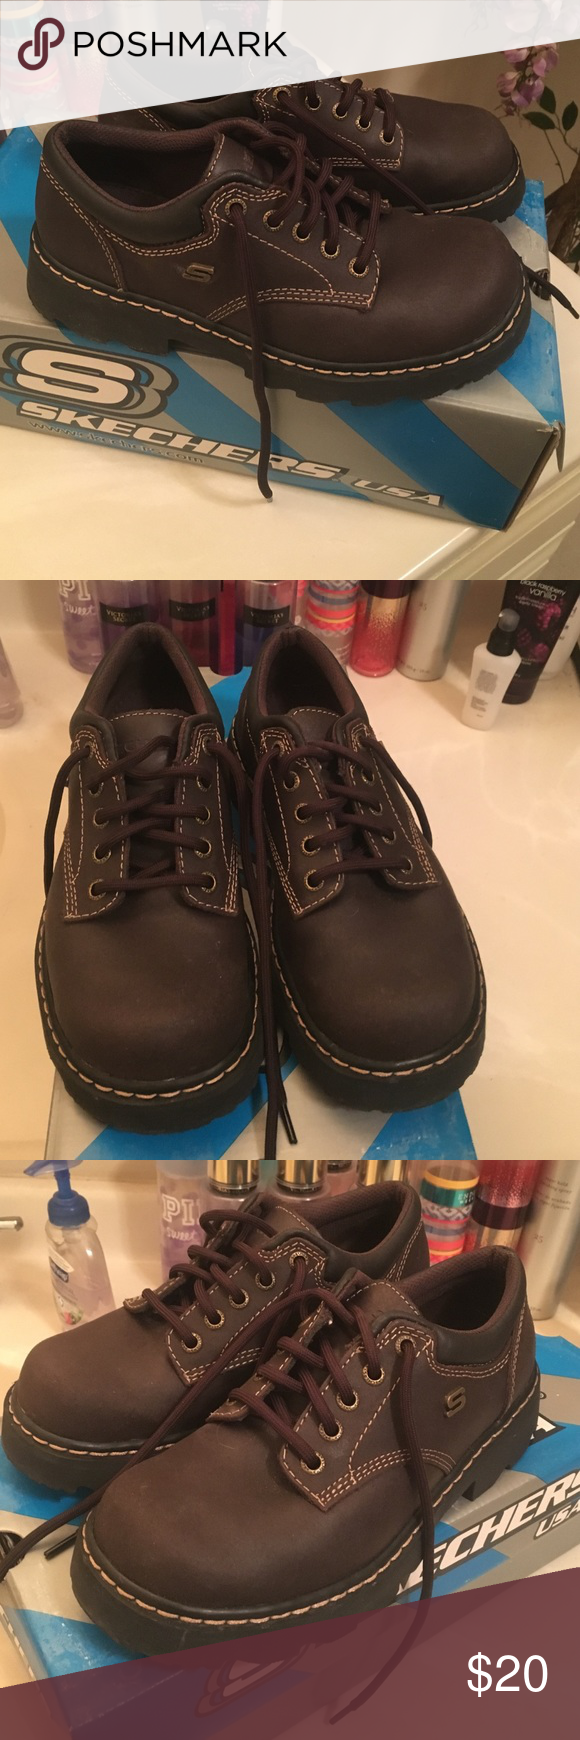 Skechers Chocolate Brown Casual Shoes